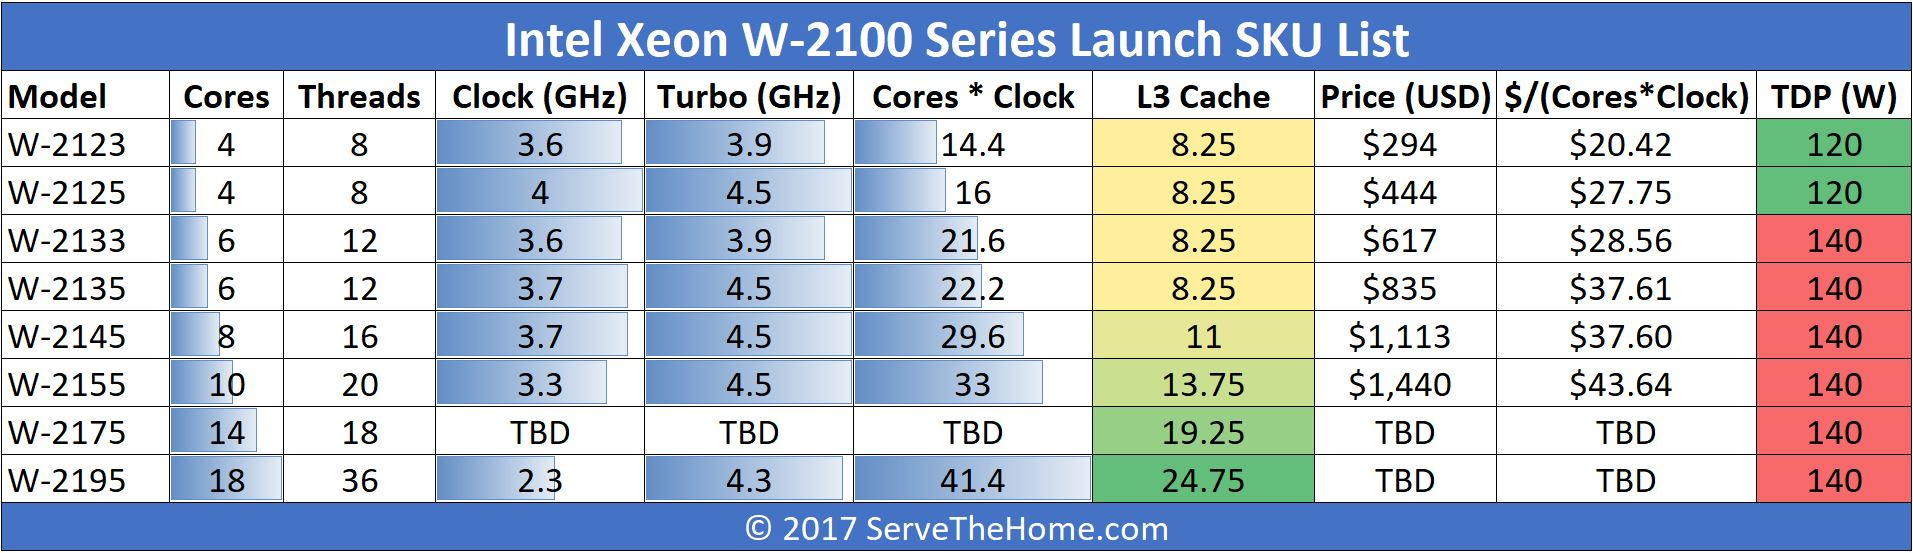 Intel Xeon W 2100 Series SKUs And Value Comparison